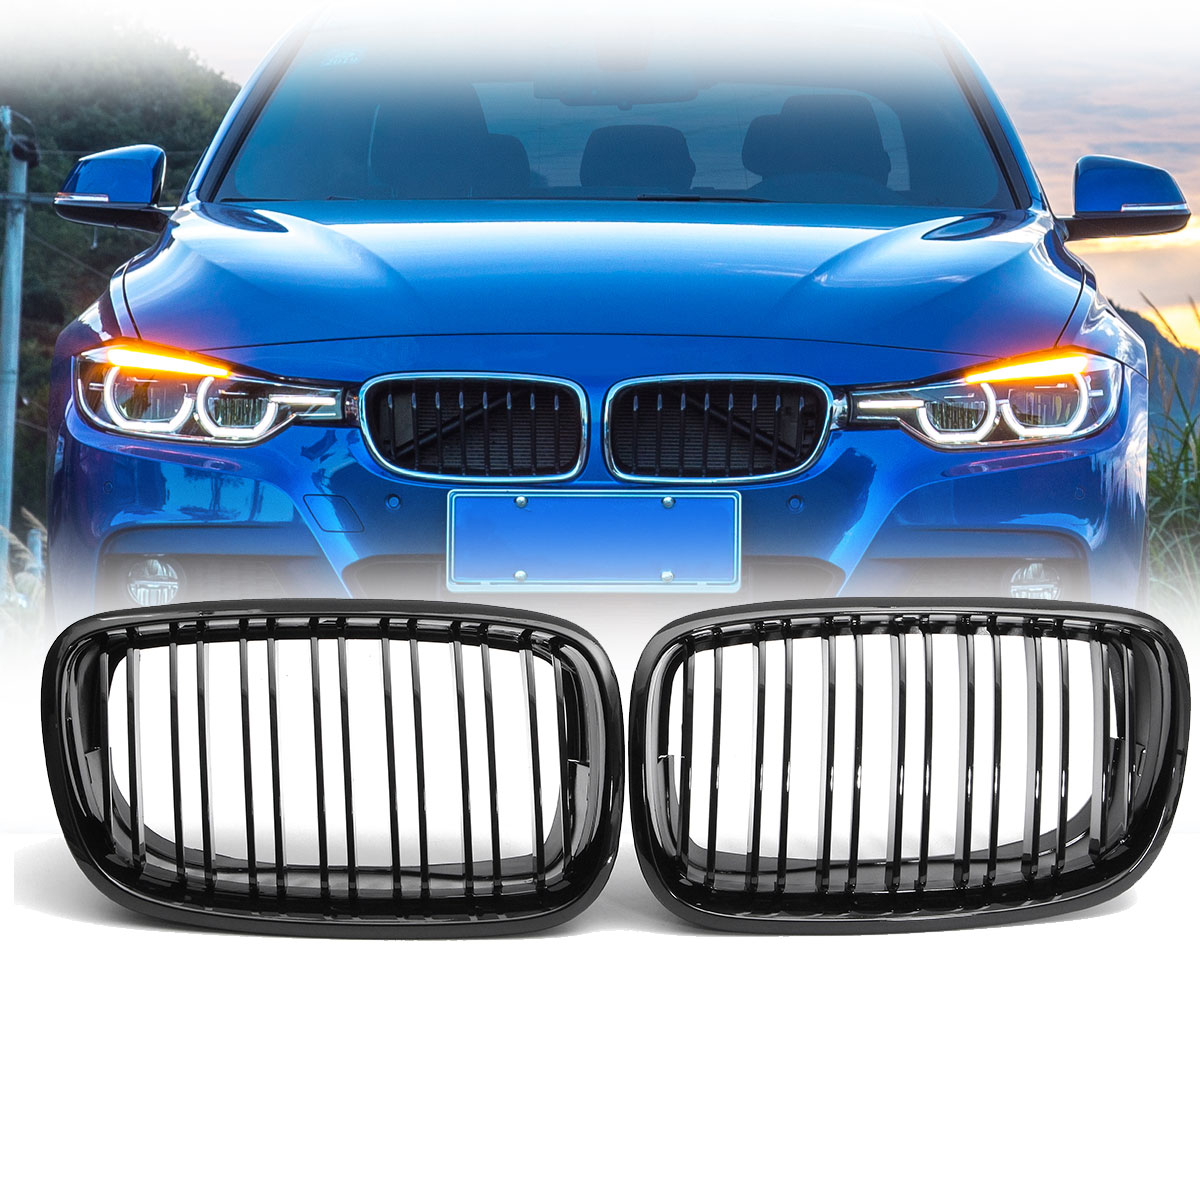 Pair Matte/Gloss Black Double Slat Kidney Grille Front Grill For BMW X5 X6 E70 E71 2007-2013 Car Styling Racing Grills car bight glossy black double slat front grille grill for bmw e92 lci facelift e93 2011 2012 2013 c 5